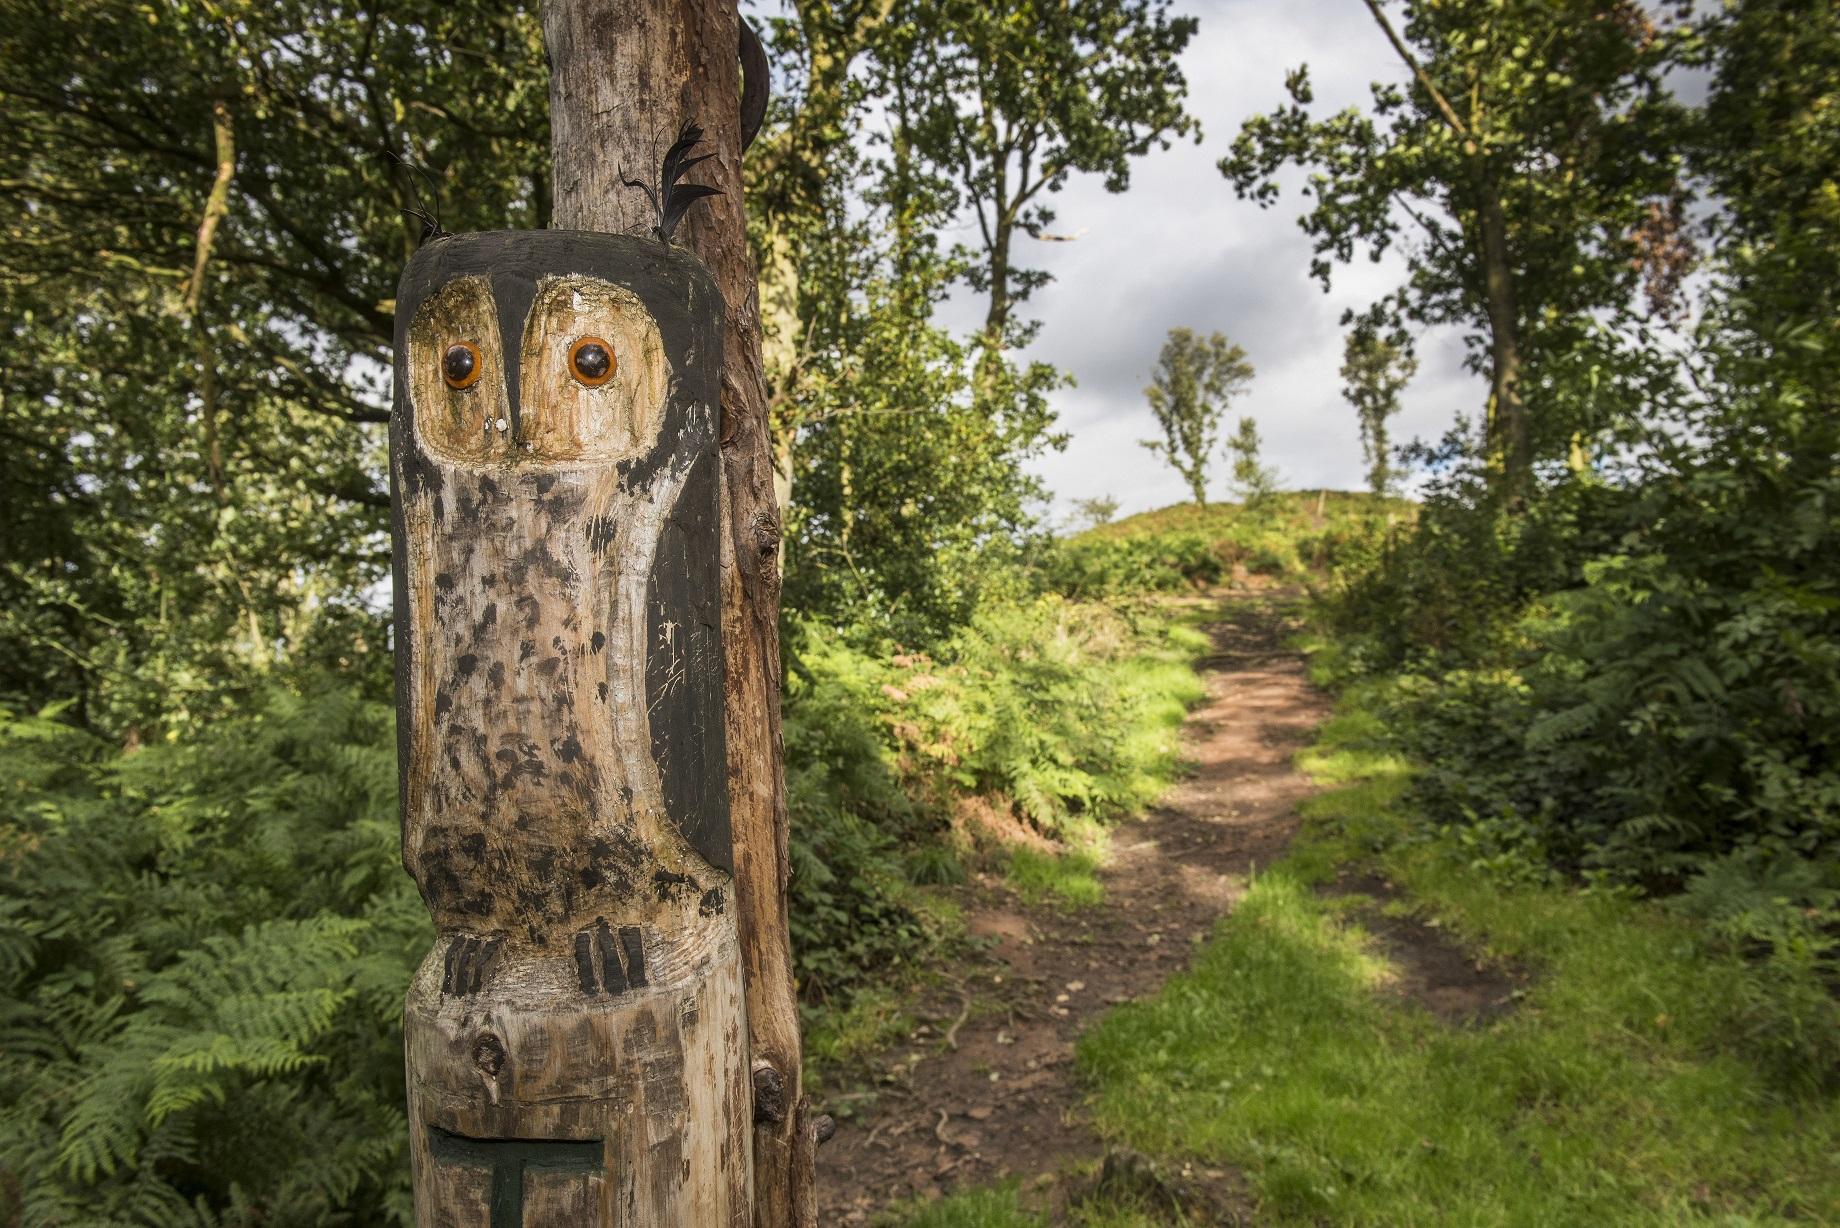 wood carving, path and trees